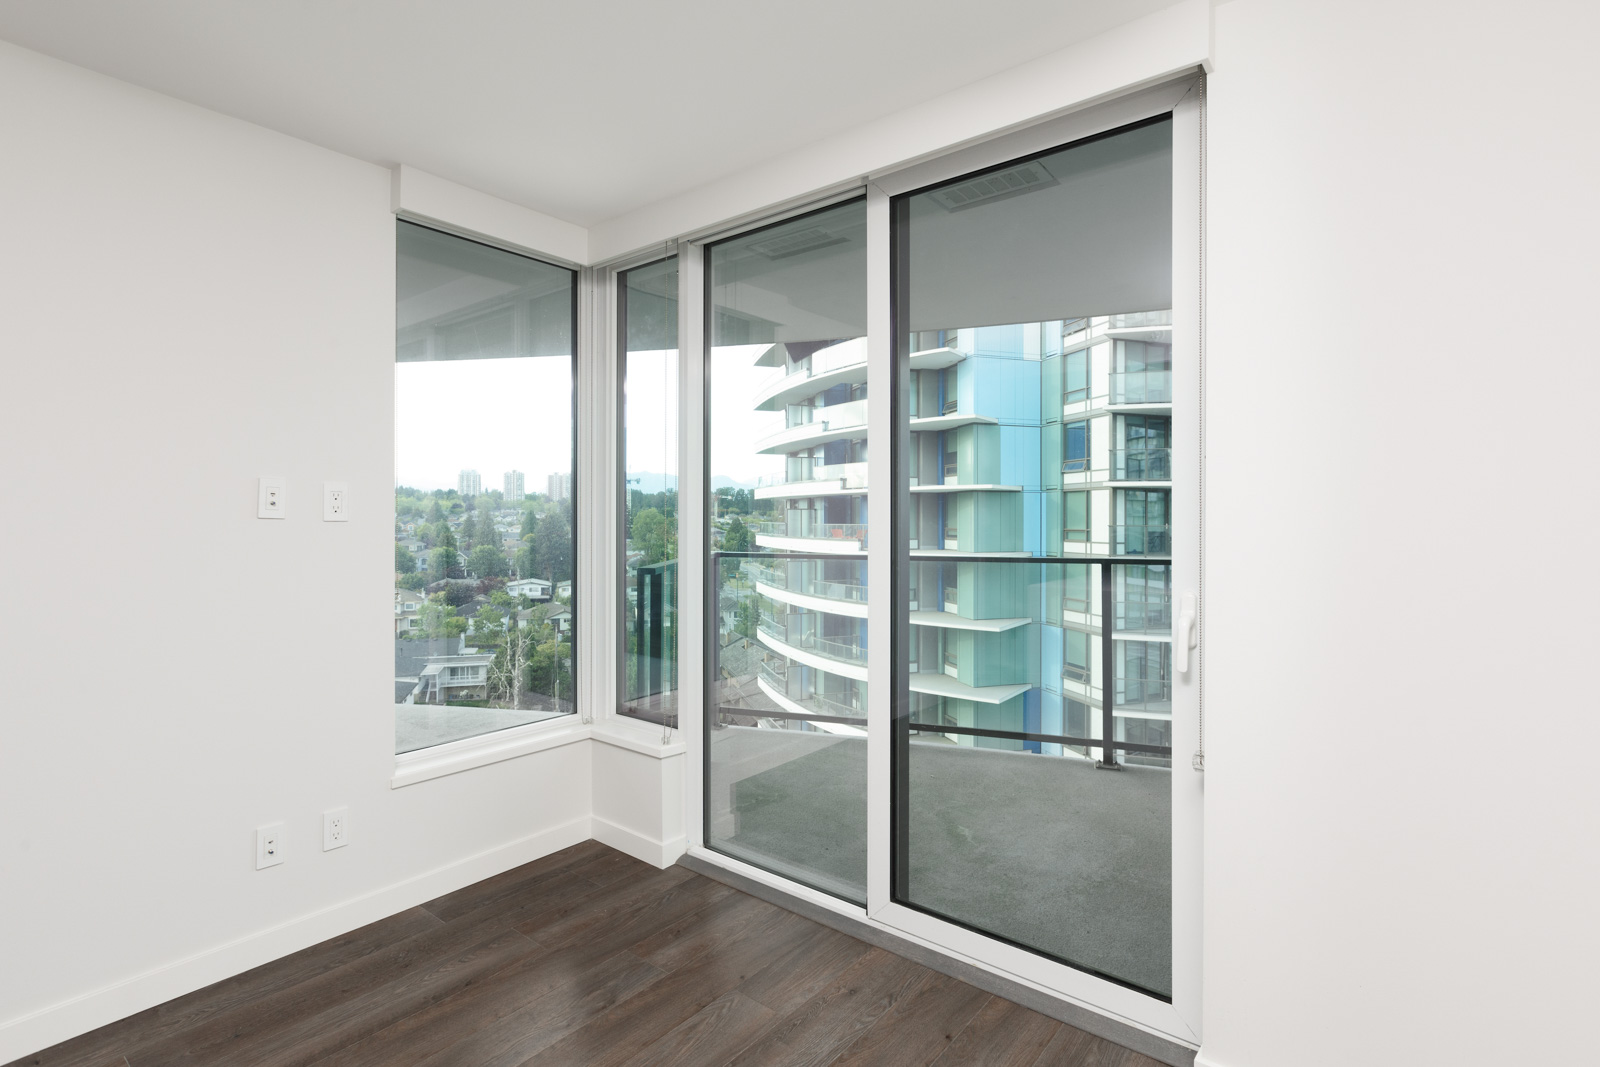 Sliding door to private balcony of luxury Vancouver rental condo.